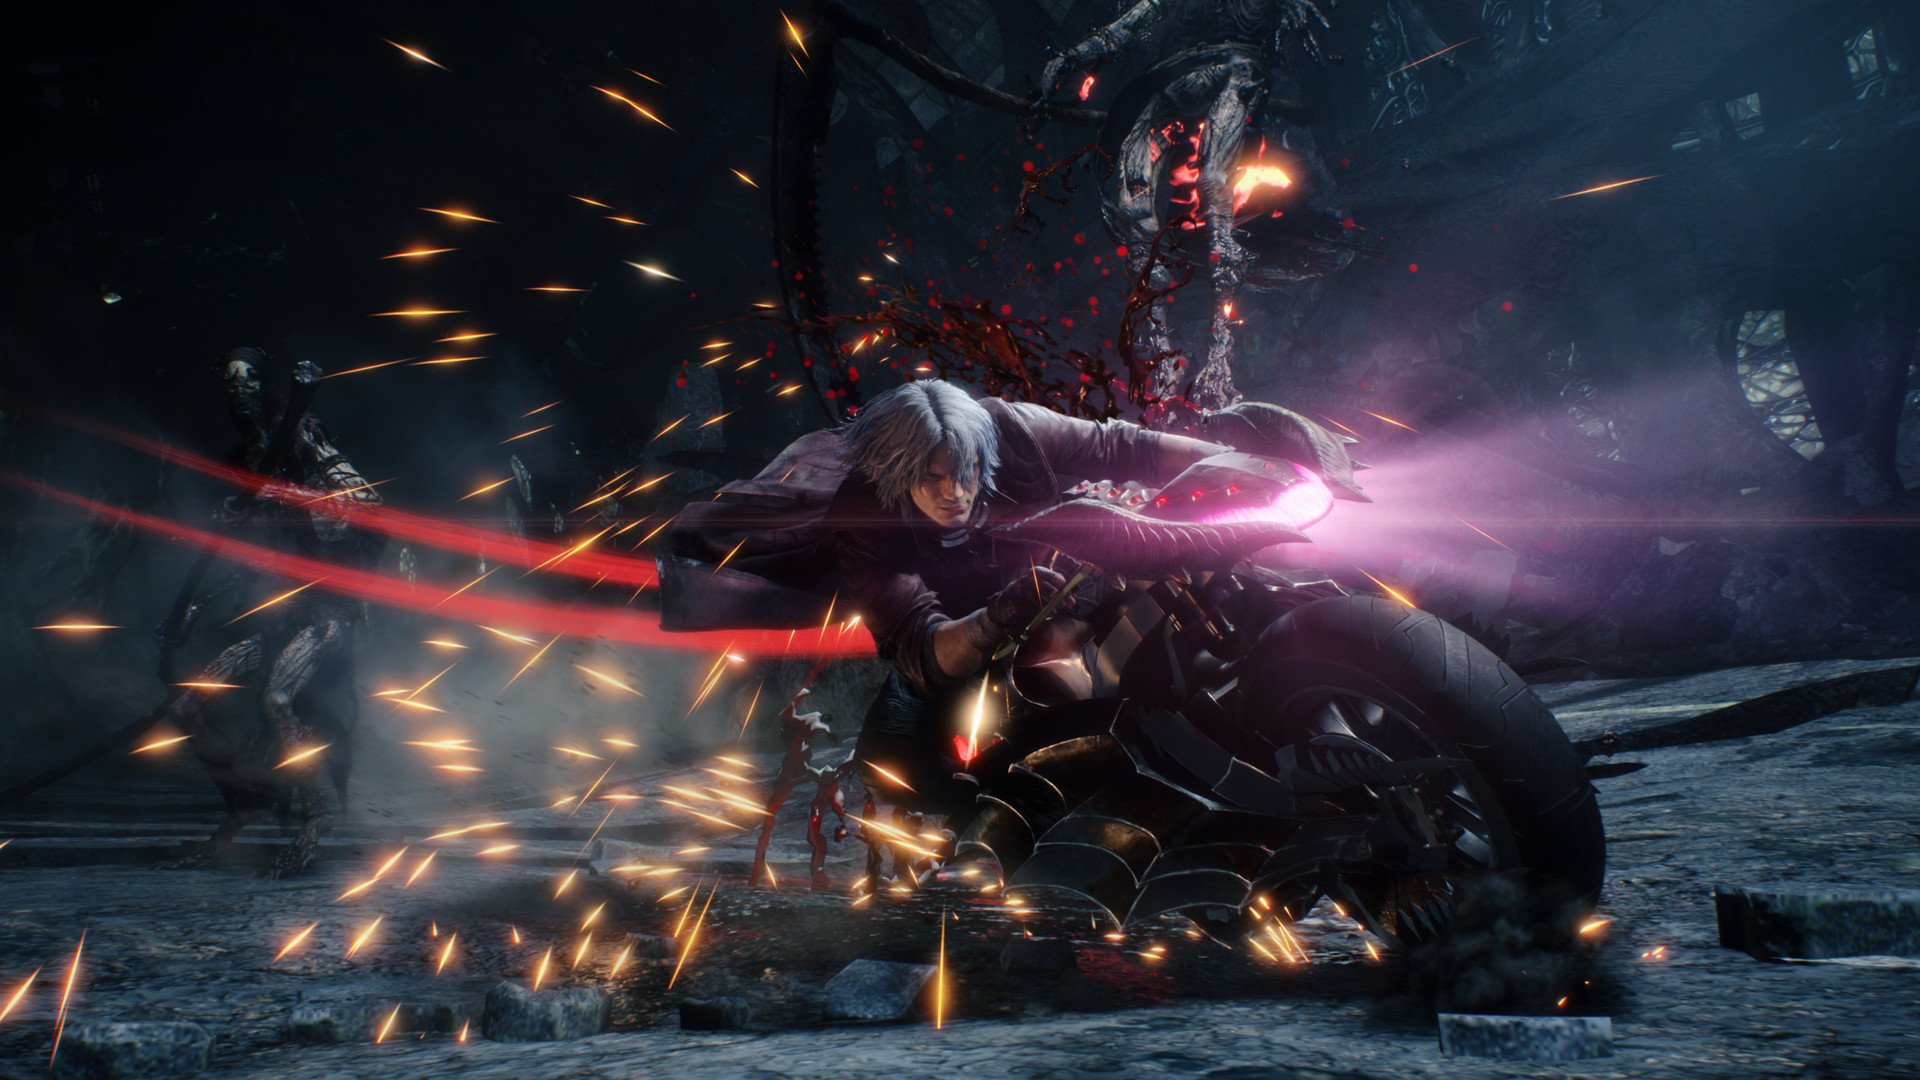 There are a variety of Style Ranks you can earn in Devil May Cry 5, with SSS being the highest.